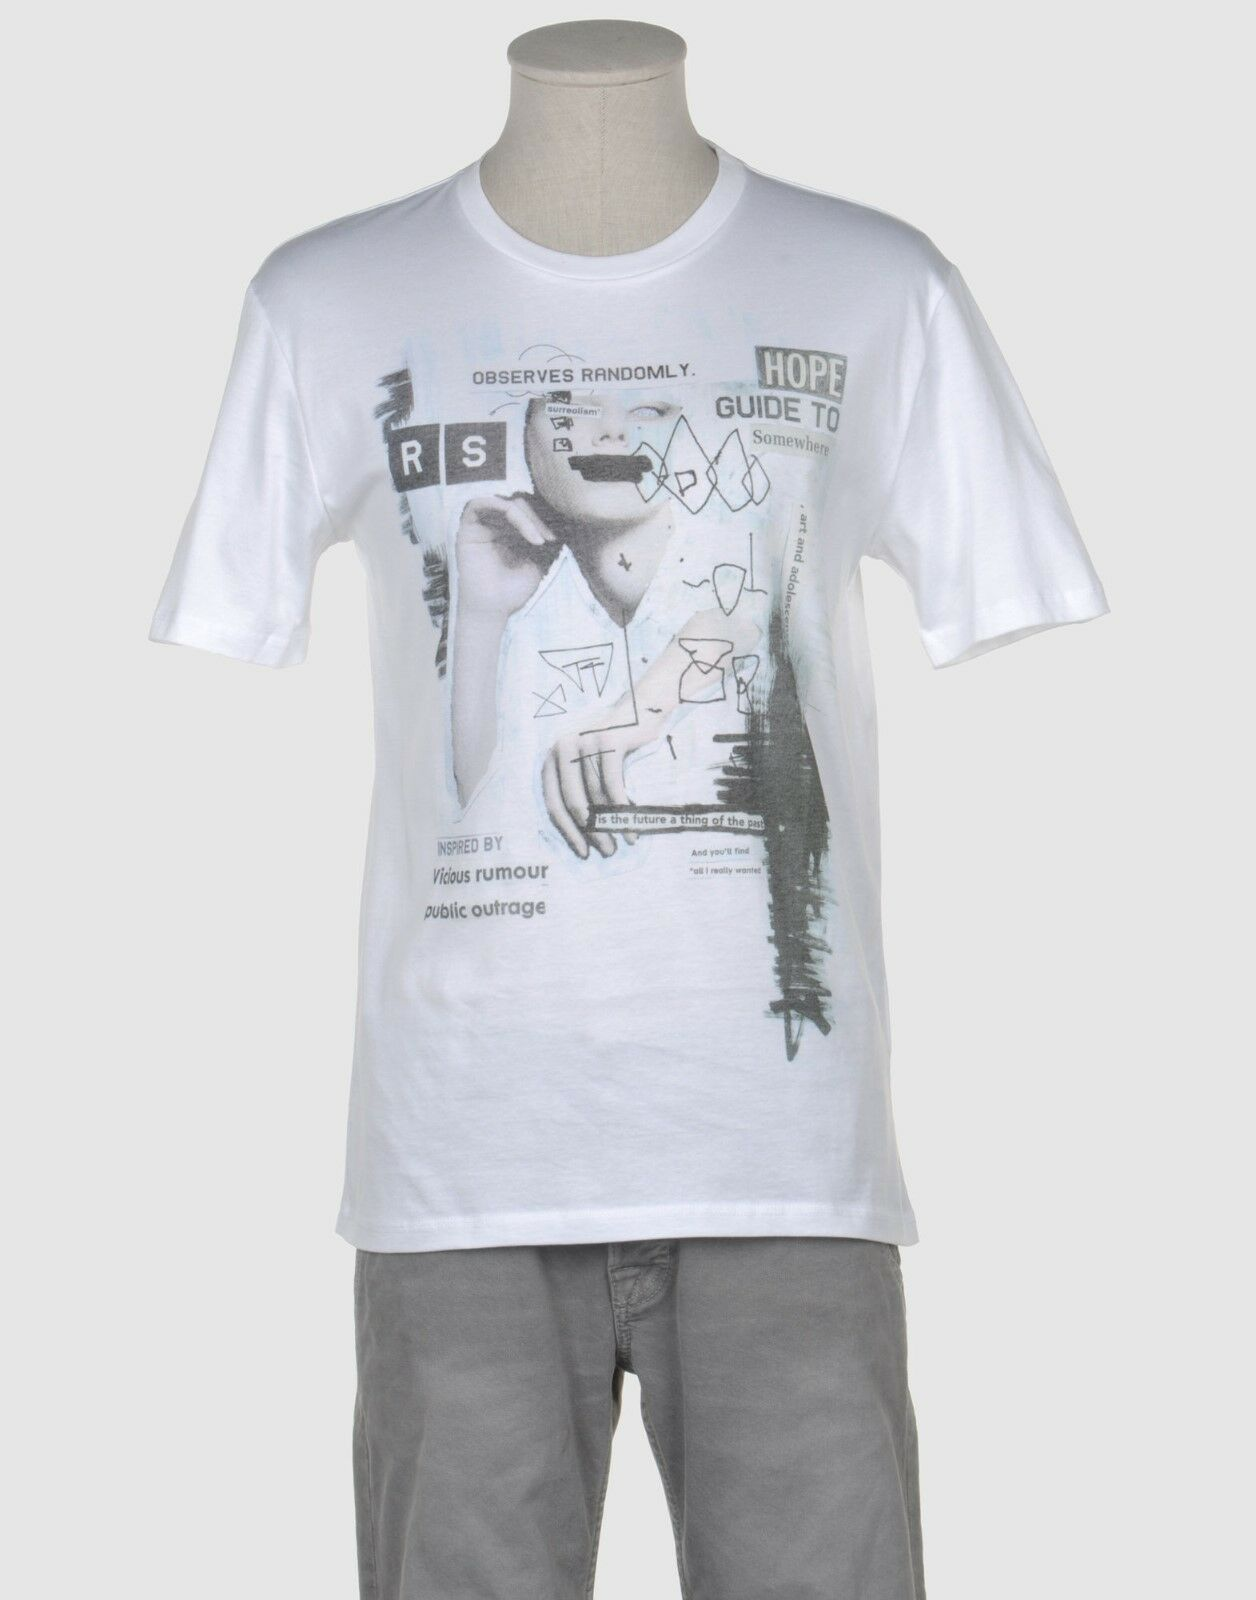 RAF by Raf Simons TS40 Fabric JR15 Surreal T-Shirt New With Tags - UK Small & XS